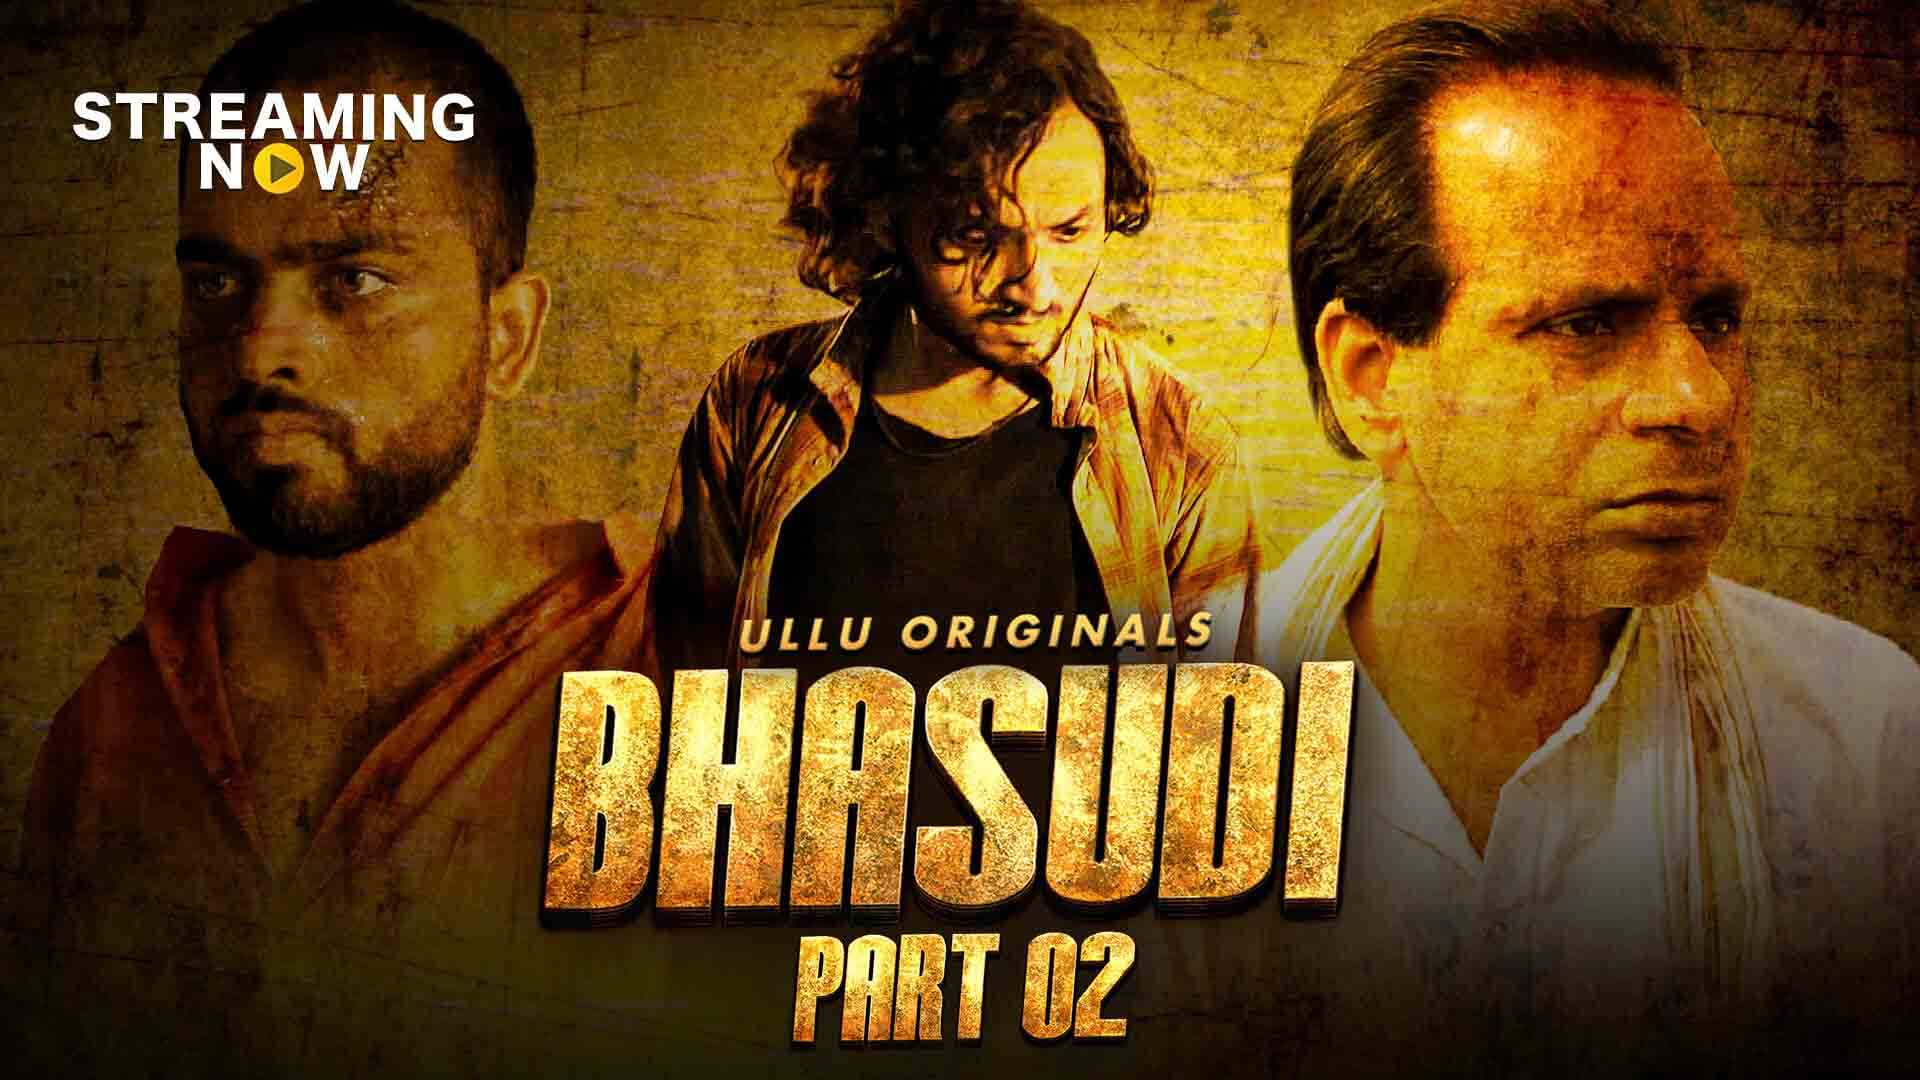 Bhasudi Part 2 2020 S01 Hindi ULLU Originals Complete Web Series 245MB HDRip Download